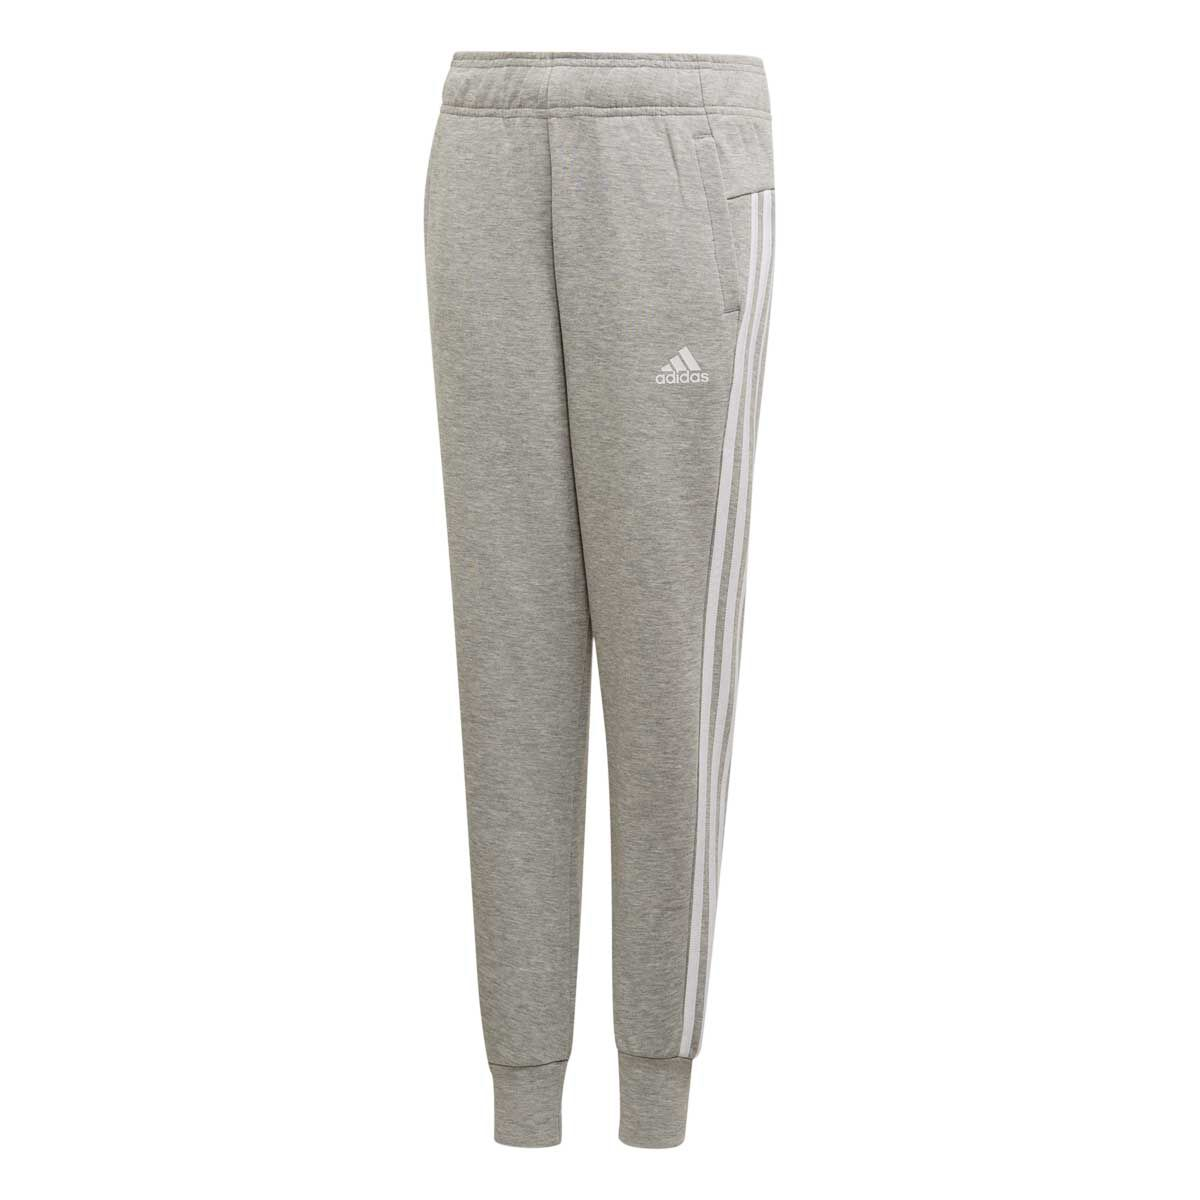 adidas Girls Must Haves 3 Stripes Pants